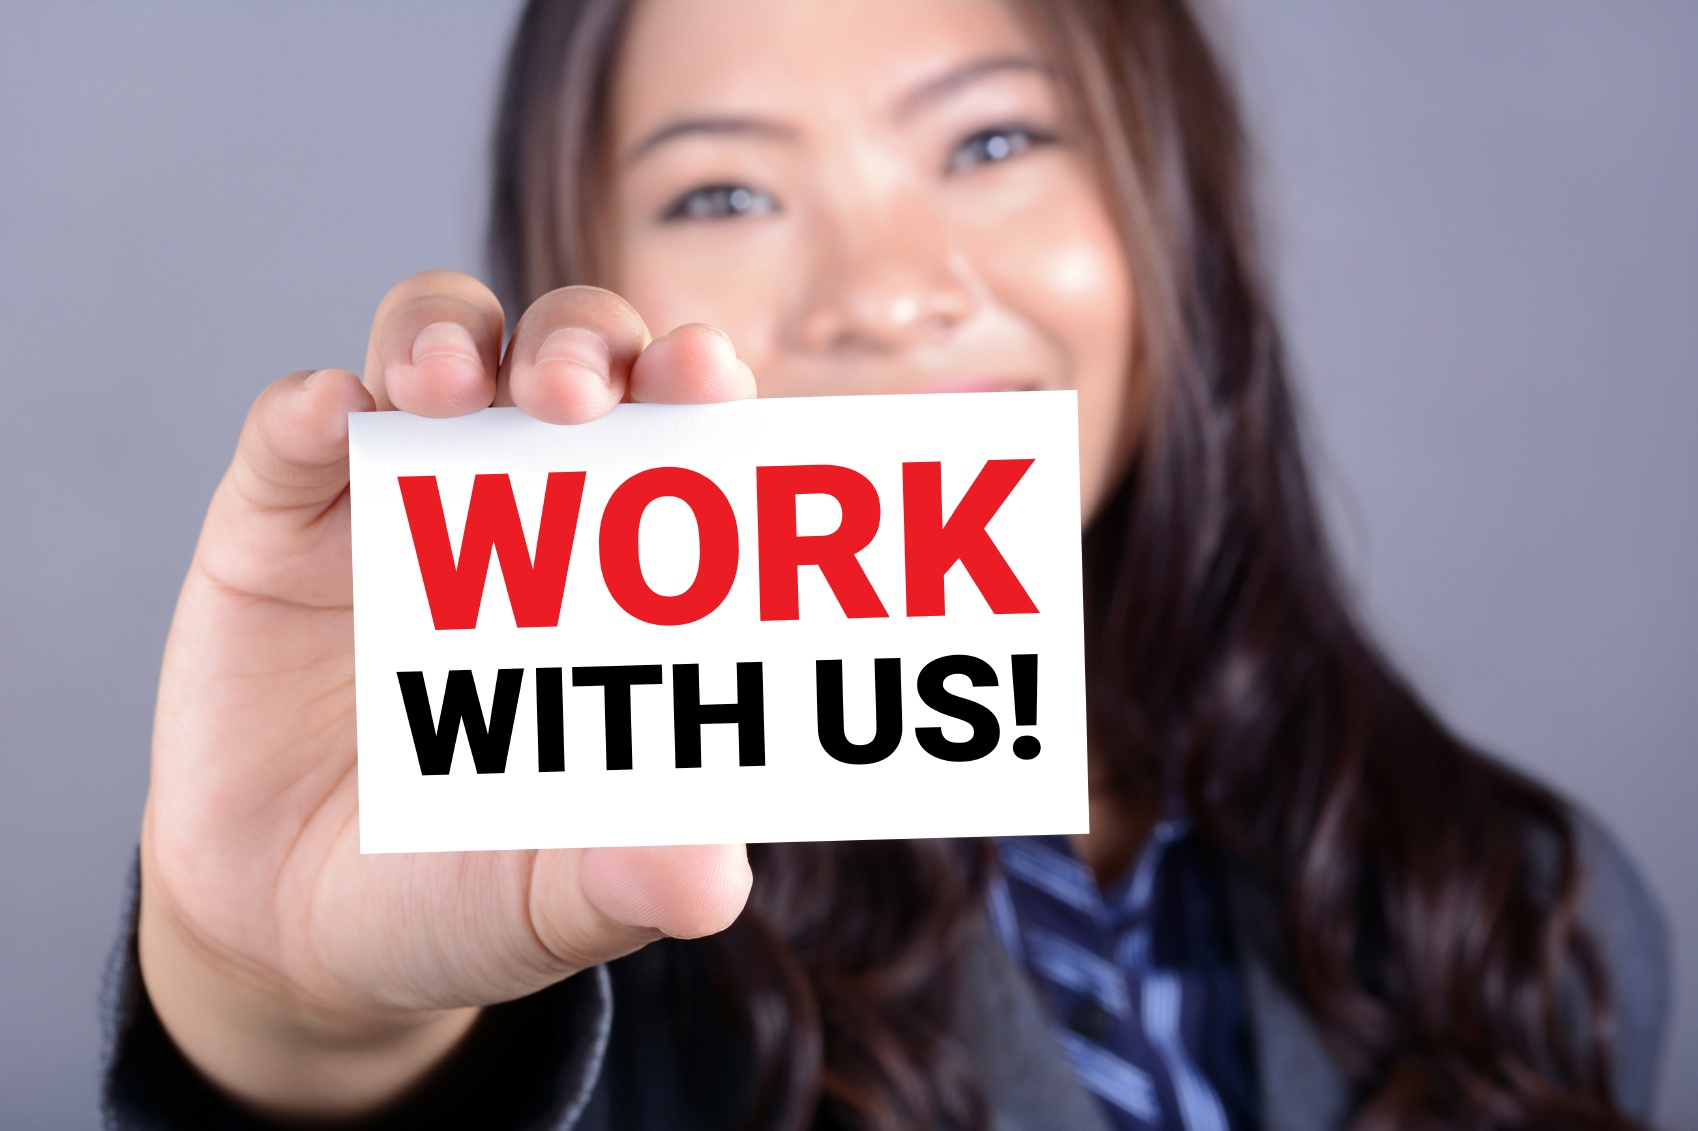 Work With Us.jpg